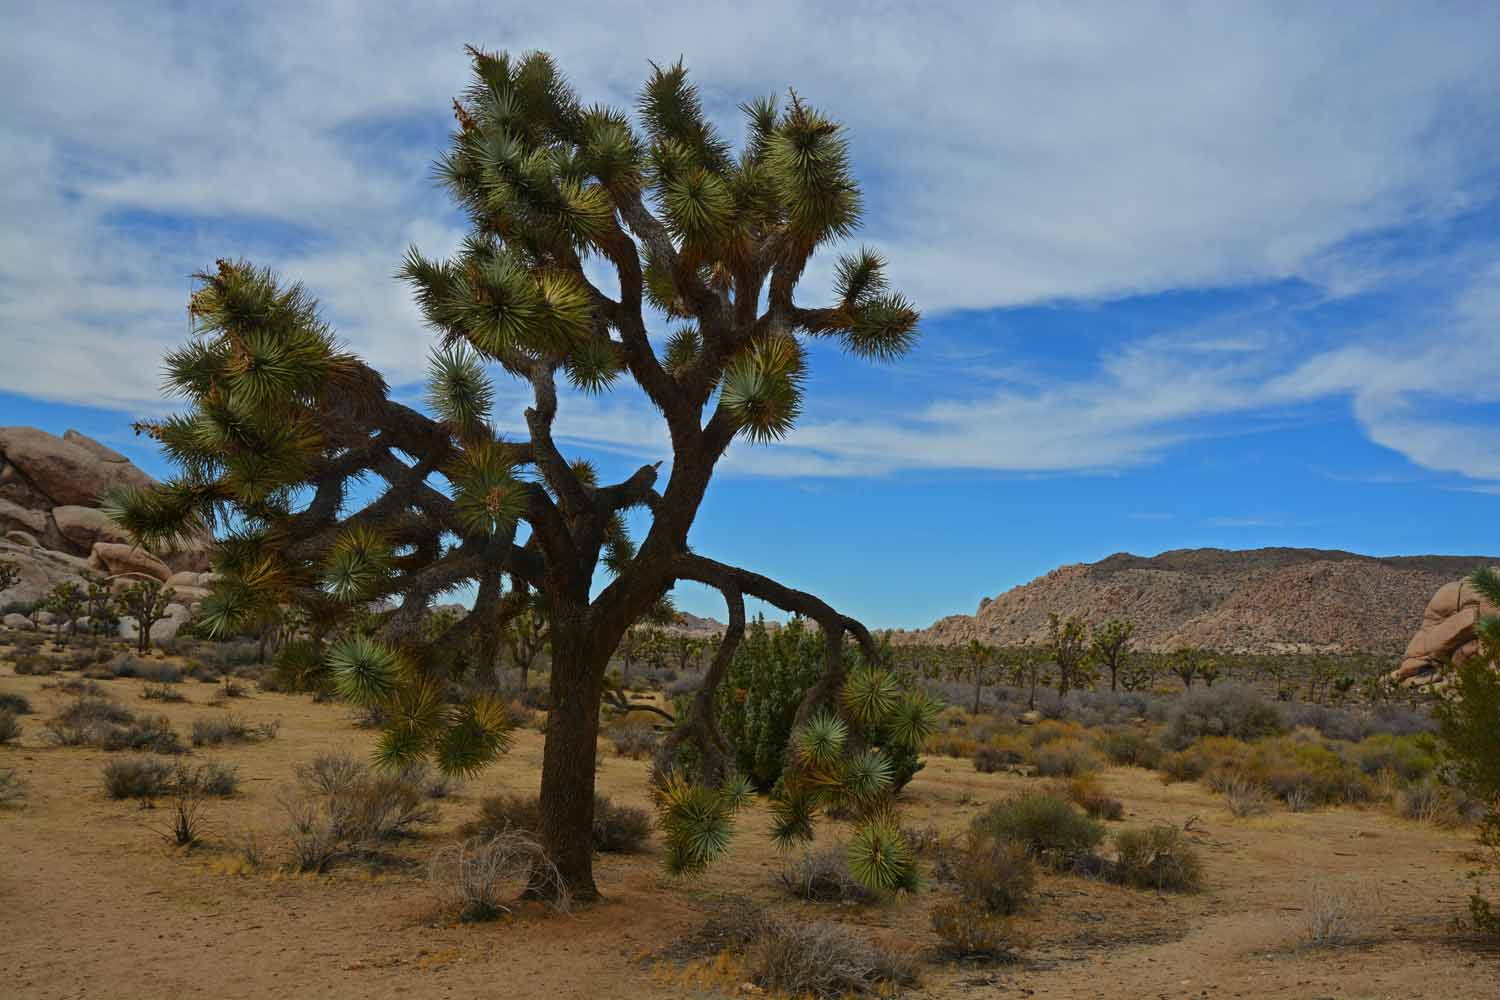 This is a very old Joshua Tree.  Some trees here are several hundred years old.